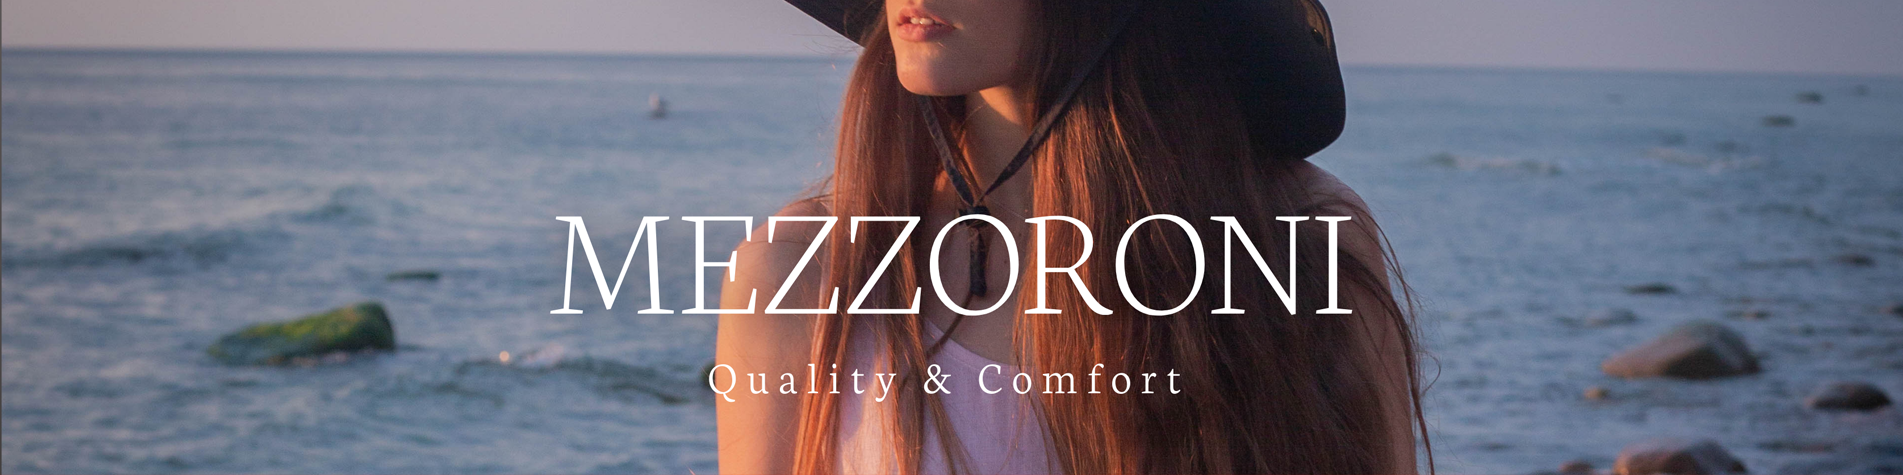 Mezzoroni new linen clothes collection promotion